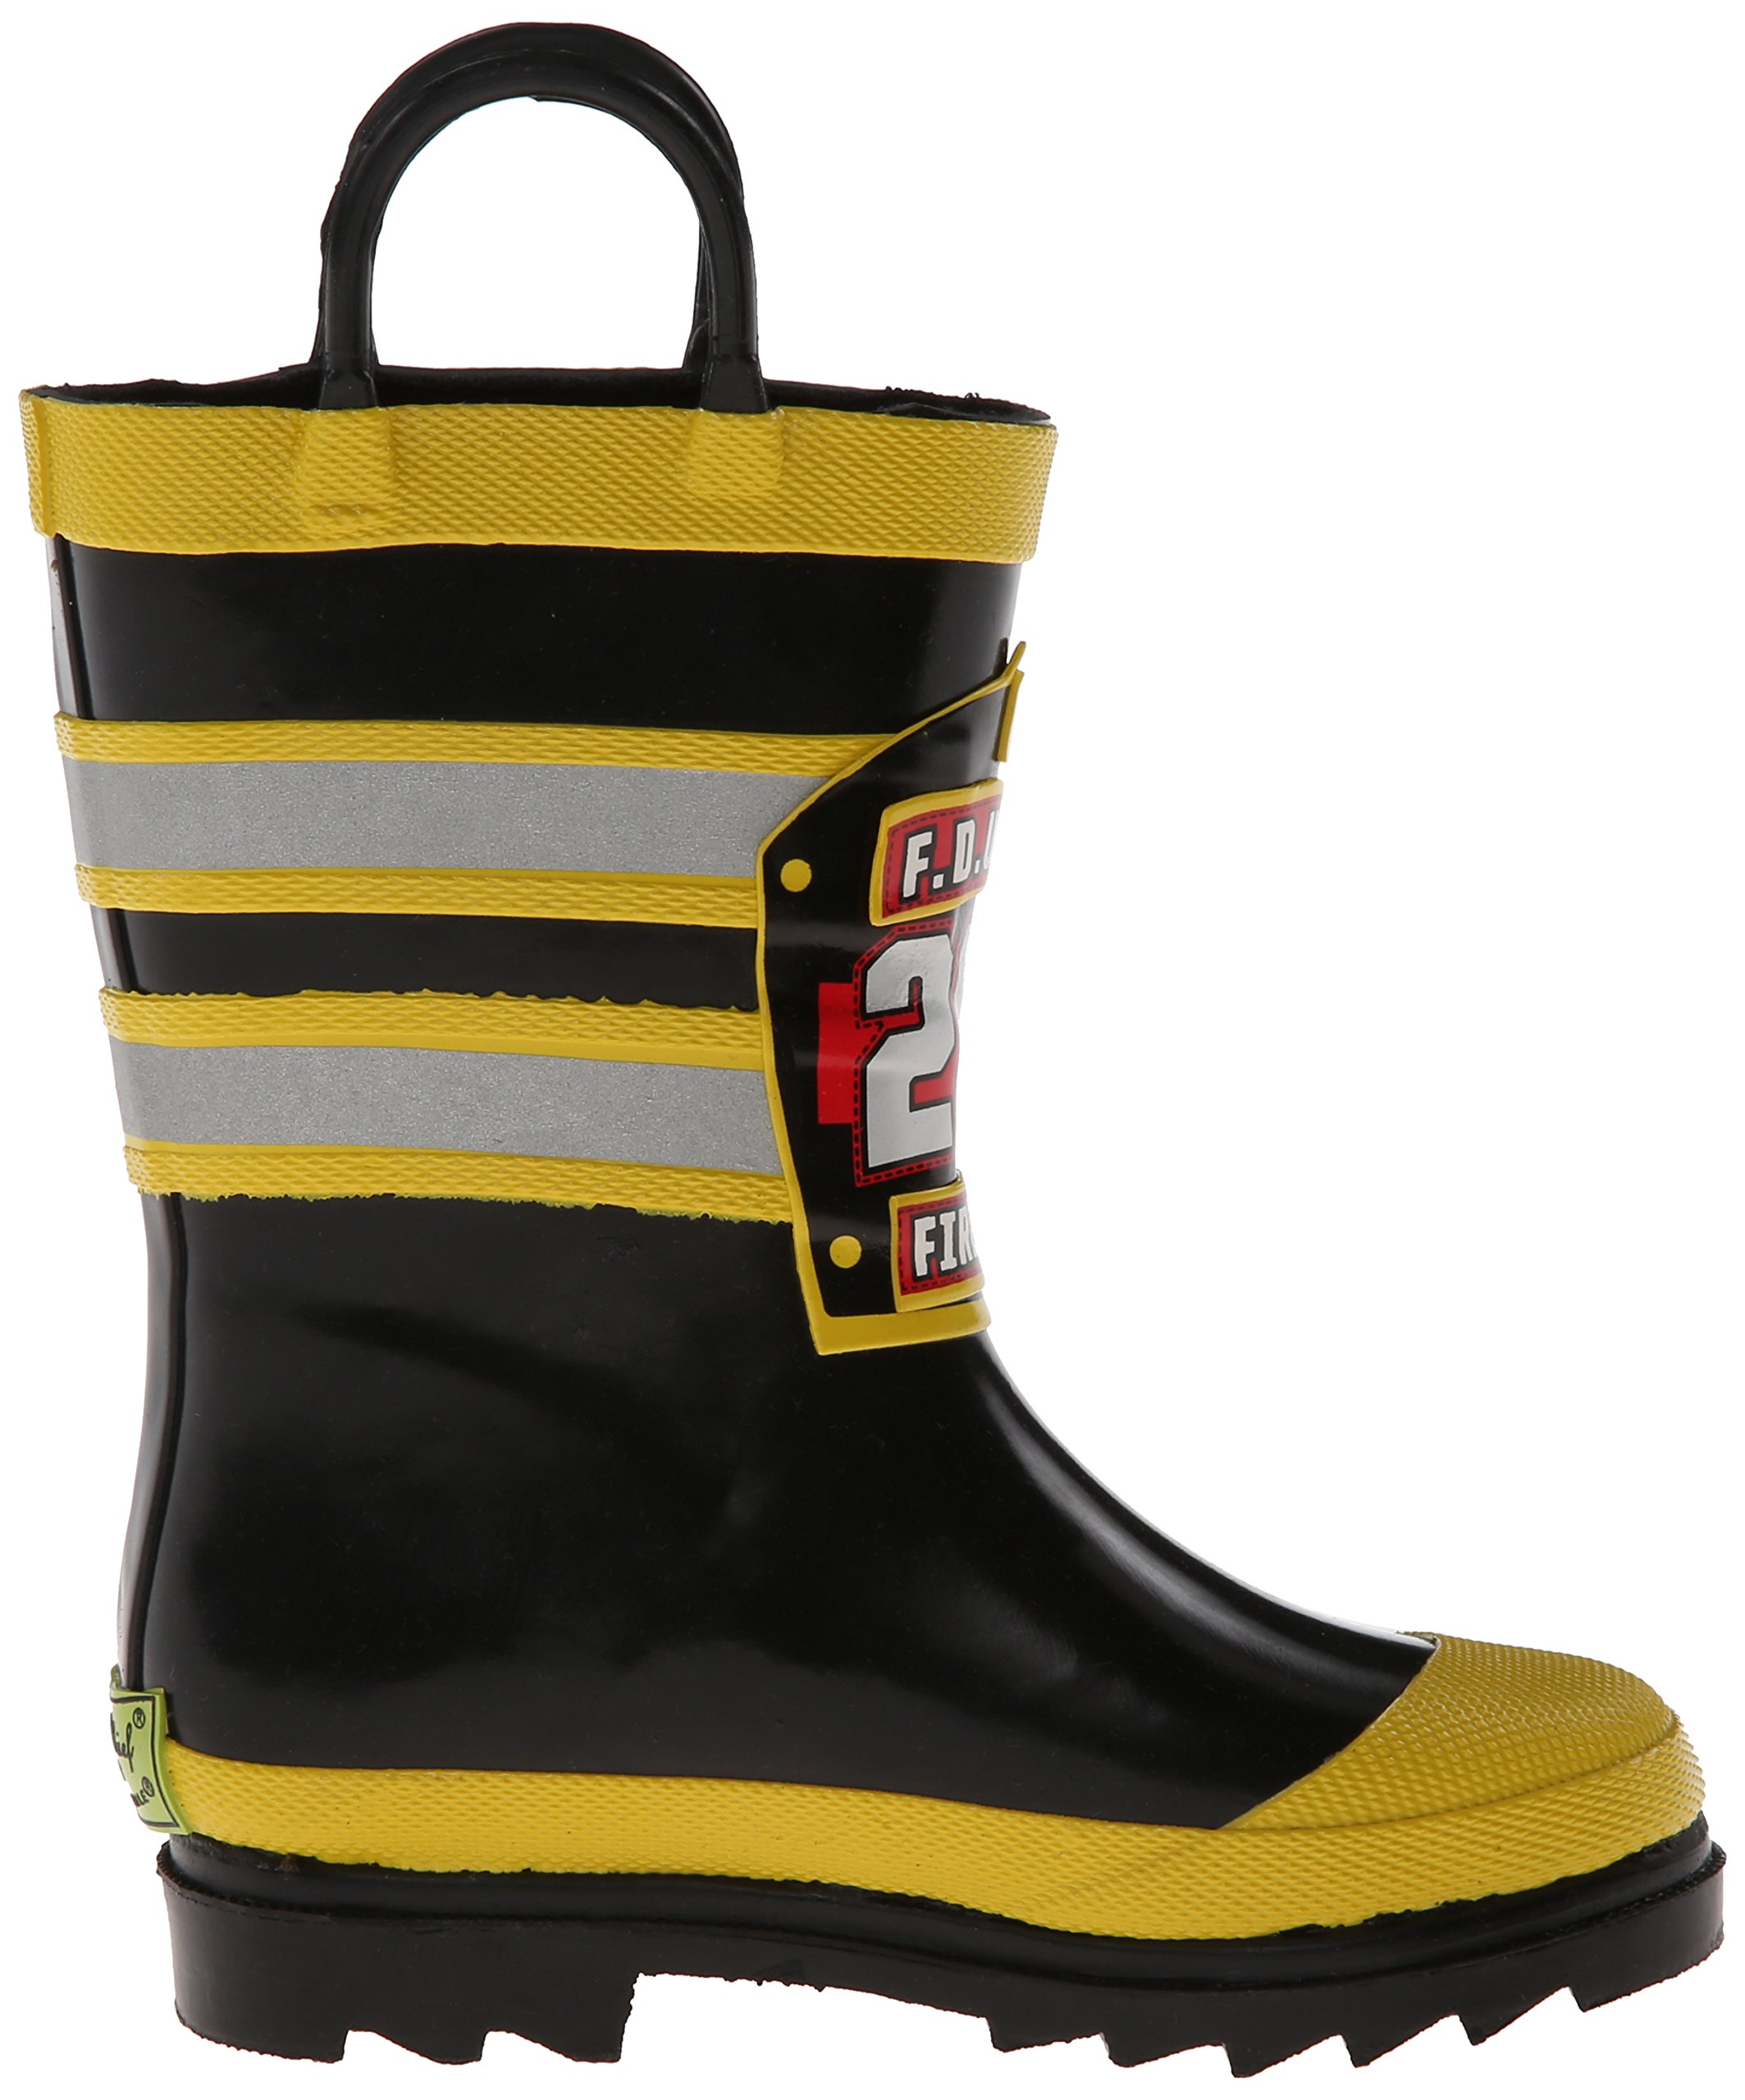 Image of the Western Chief Boys Waterproof Printed Rain Boot with Easy Pull On Handles, F.D.U.S.A., 10 M US Toddler